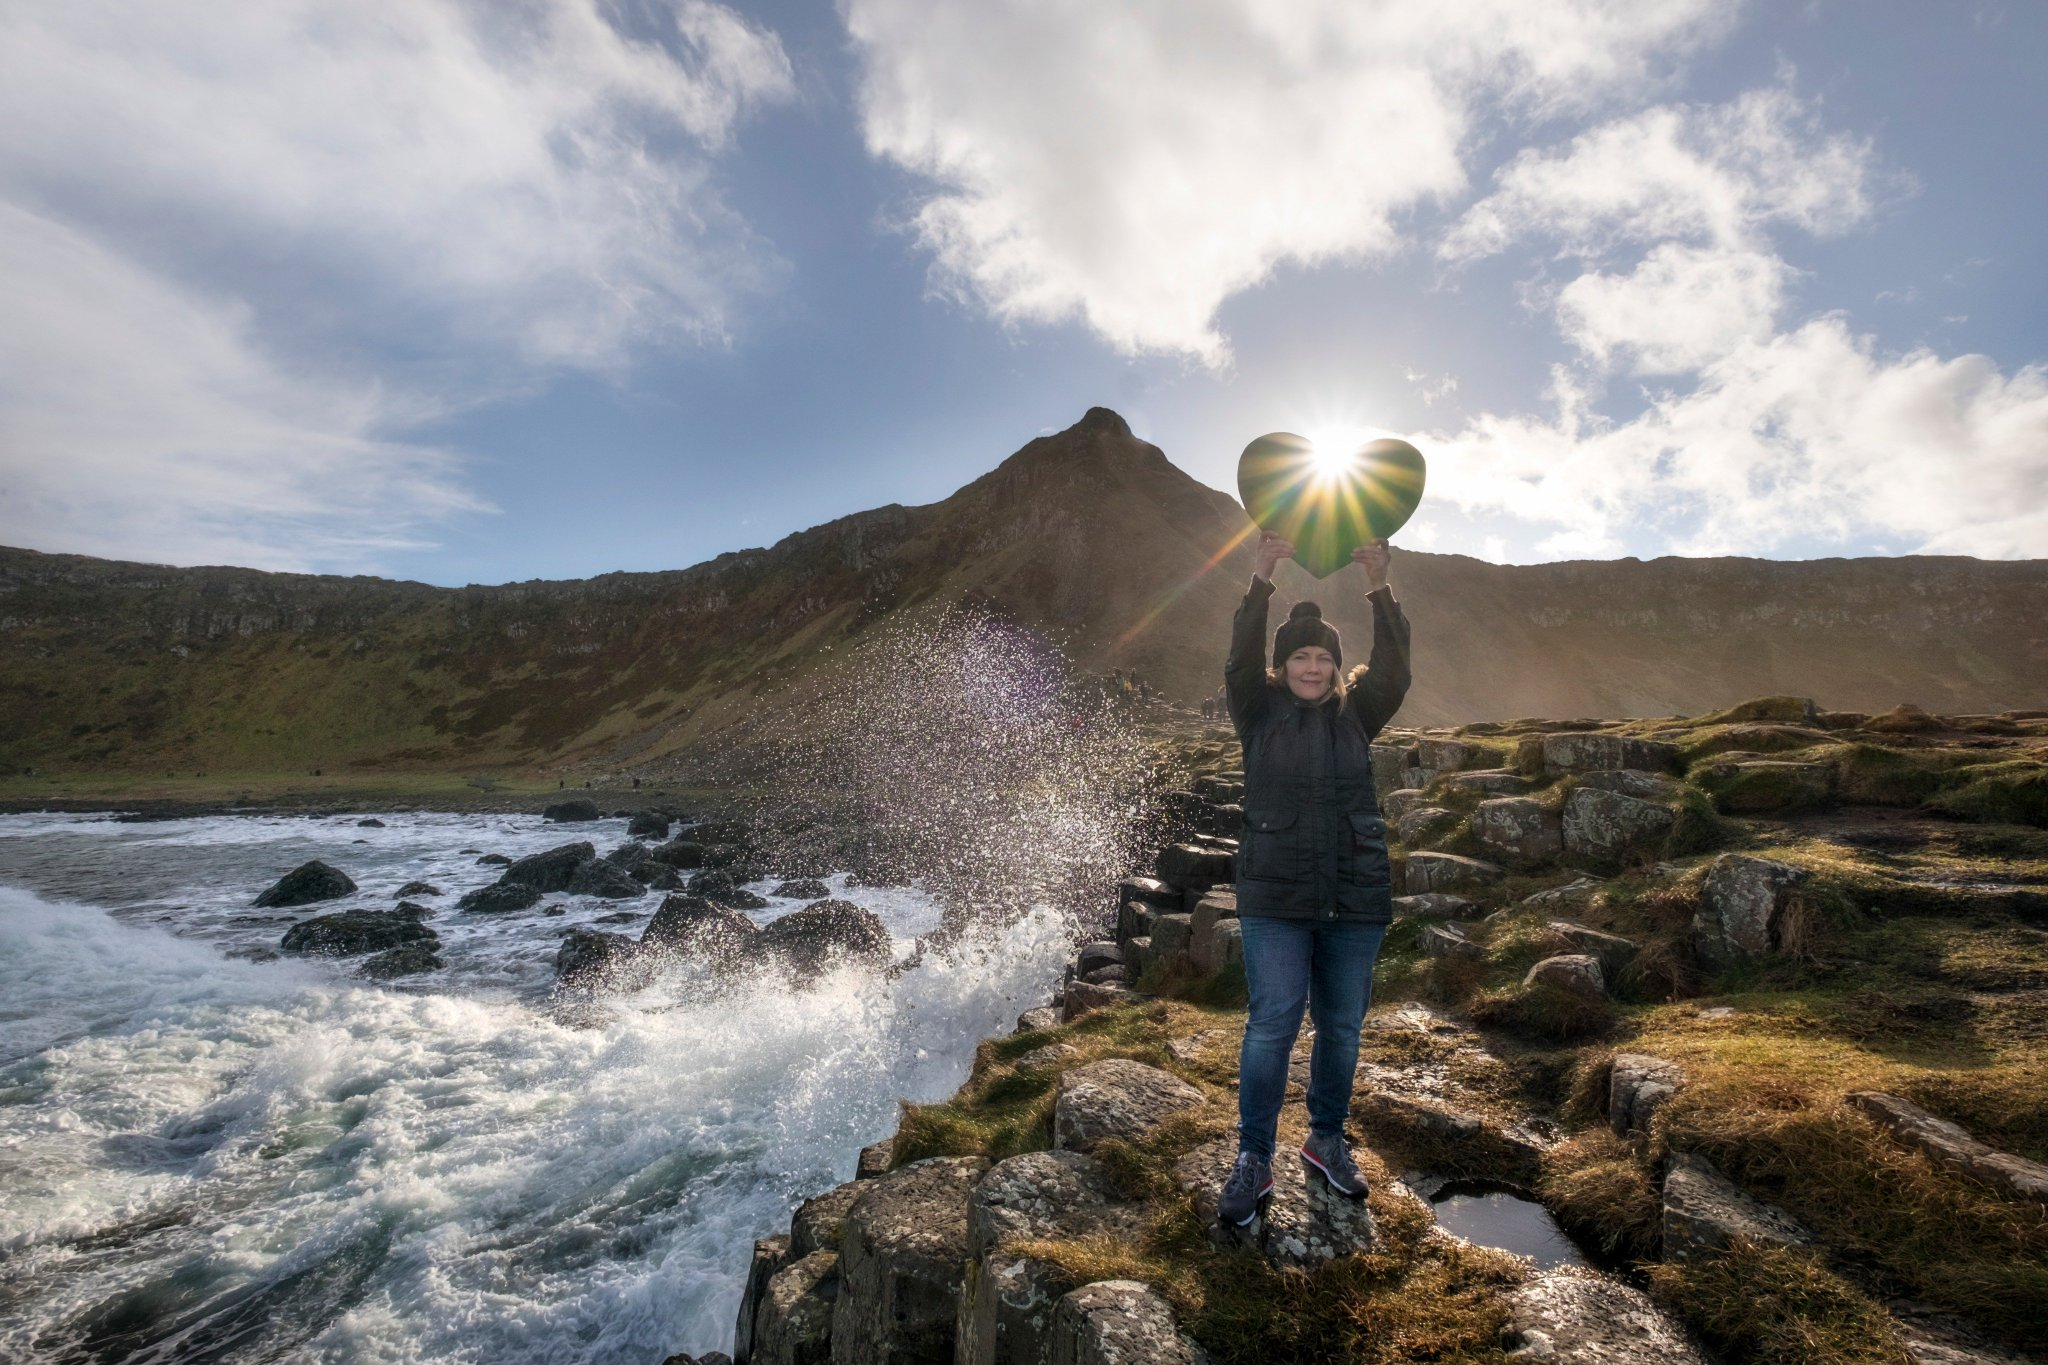 We want to protect the #GiantsCauseway from #climatechange. What would you like to #showthelove for this #valentines? https://t.co/INELpbEKEj